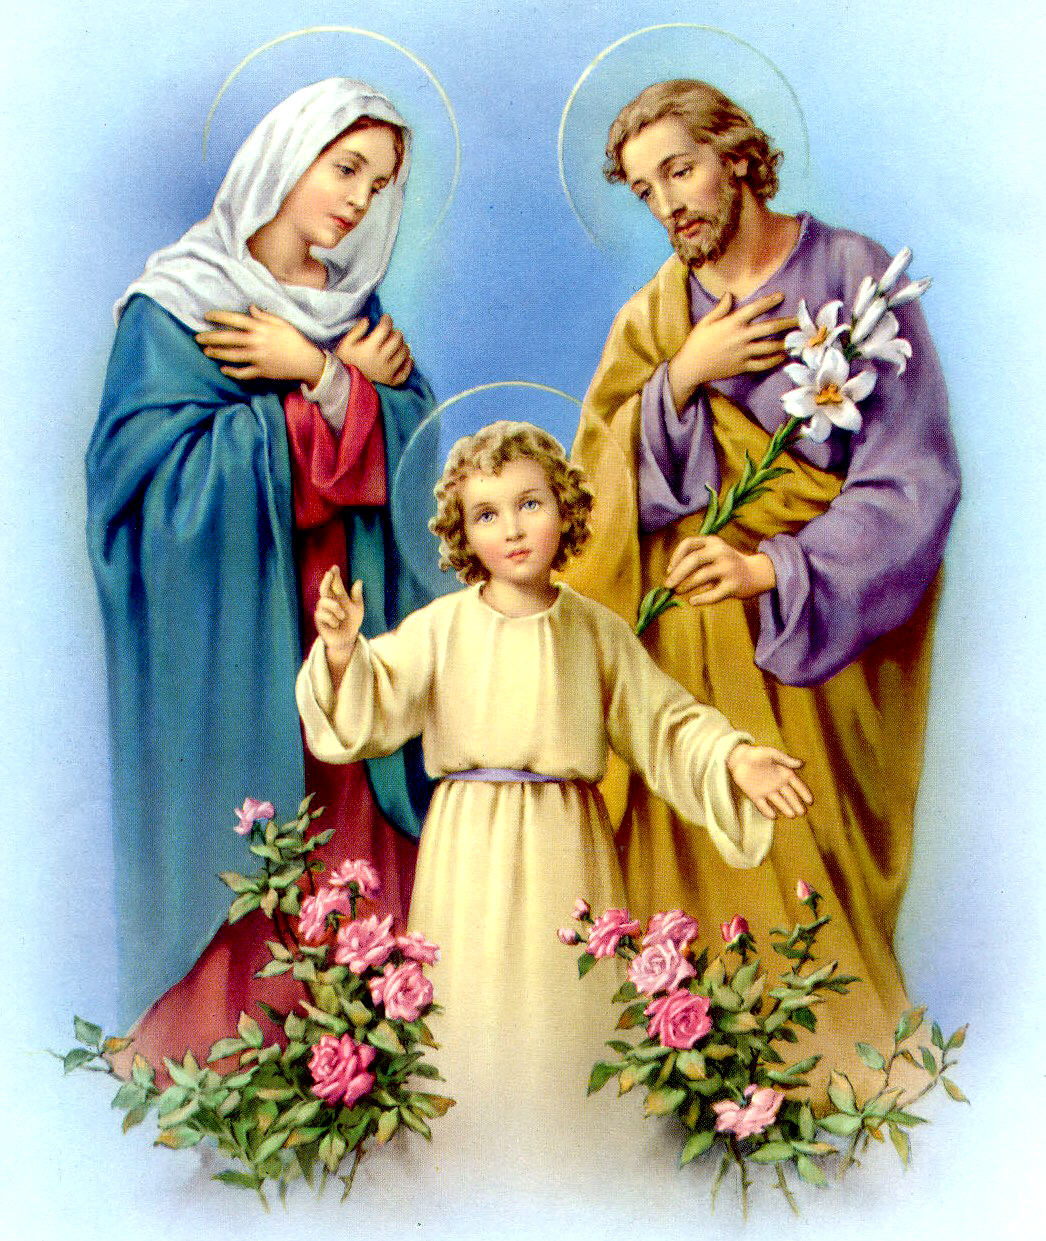 Download hd christmas new year 2018 bible verse - Child jesus images download ...